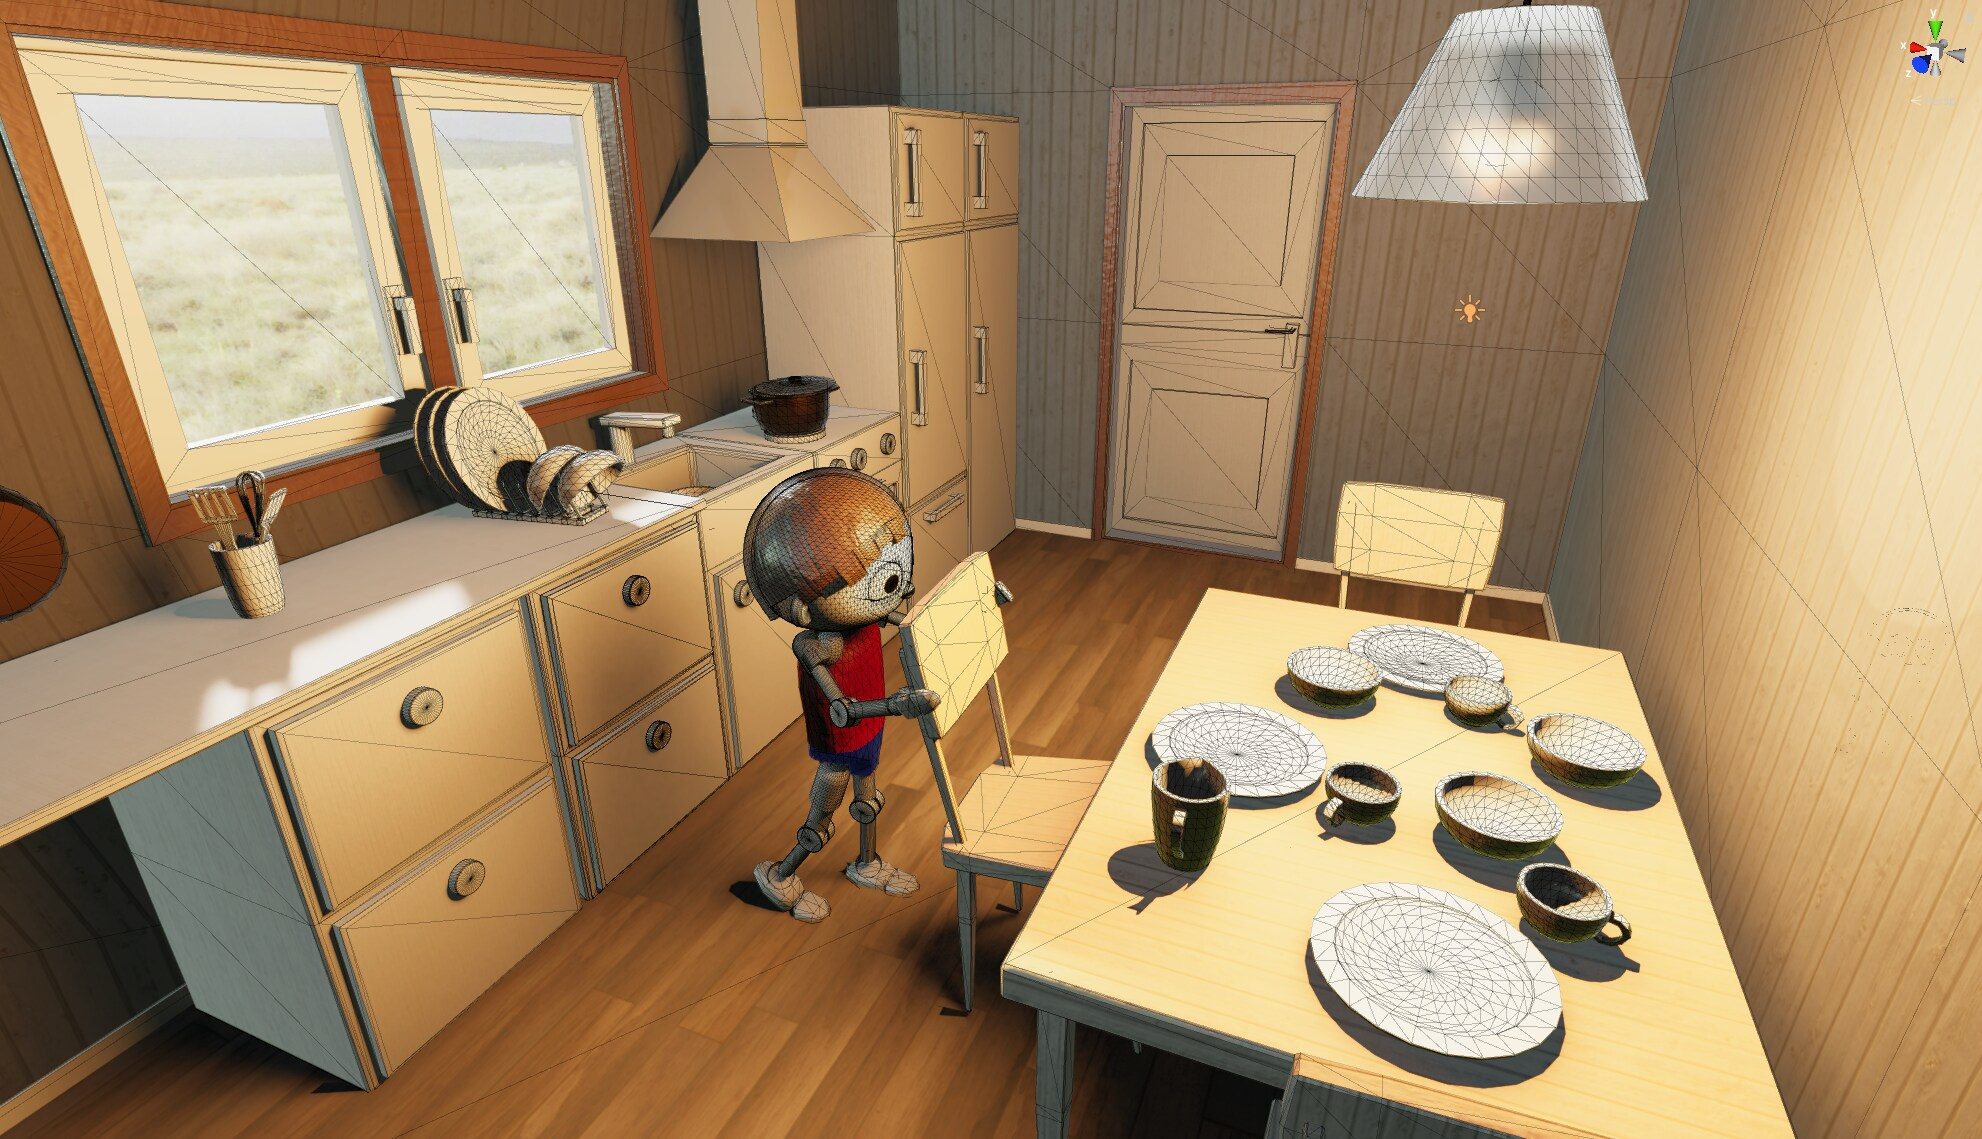 A still from Project Leolina. A robot-like boy is pulling out a chair at a table in a kitchen. This time the shot is from above.